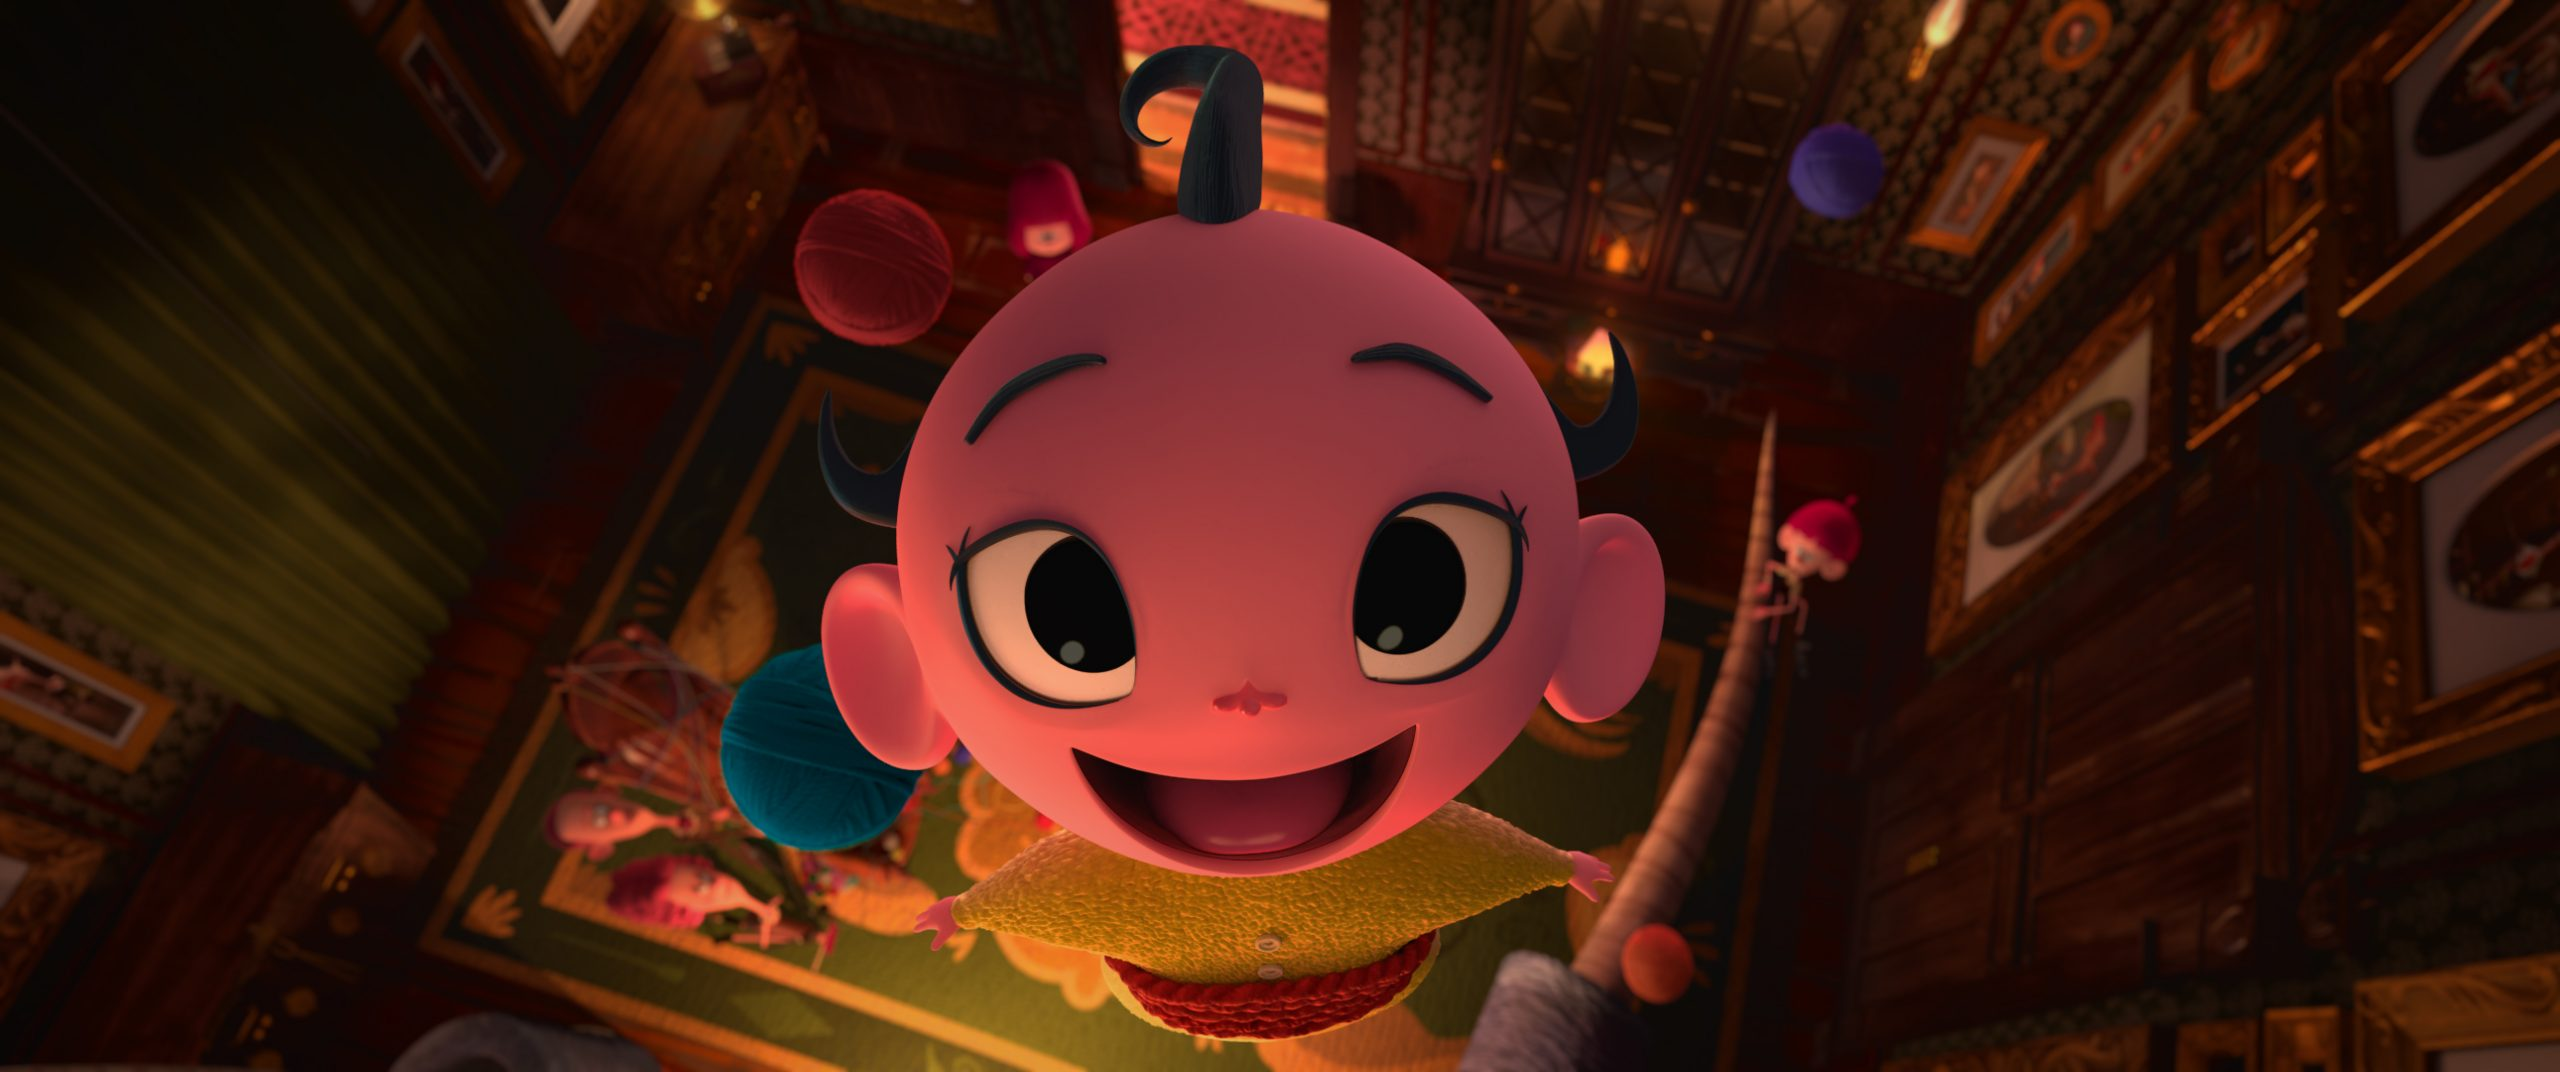 'The Willoughbys' Review: Enjoyable animated film that brings colors and smiles